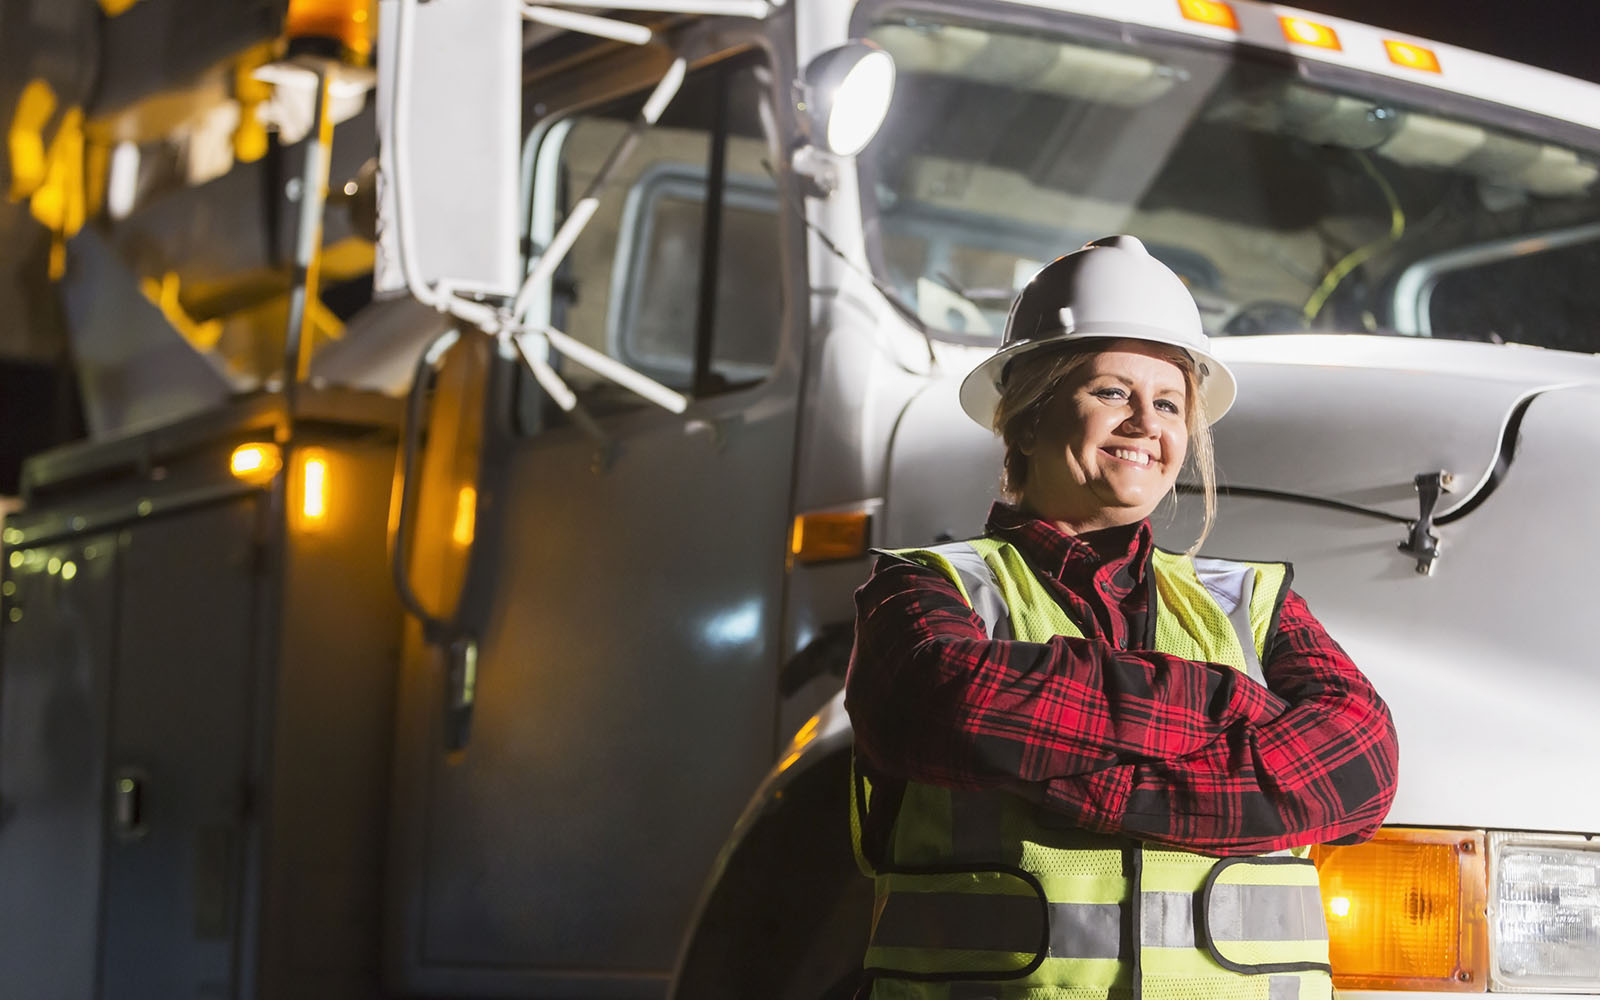 A female worker wearing a hardhat and safety vest standing in front of a work truck. She is a utility worker, engineer or technician.